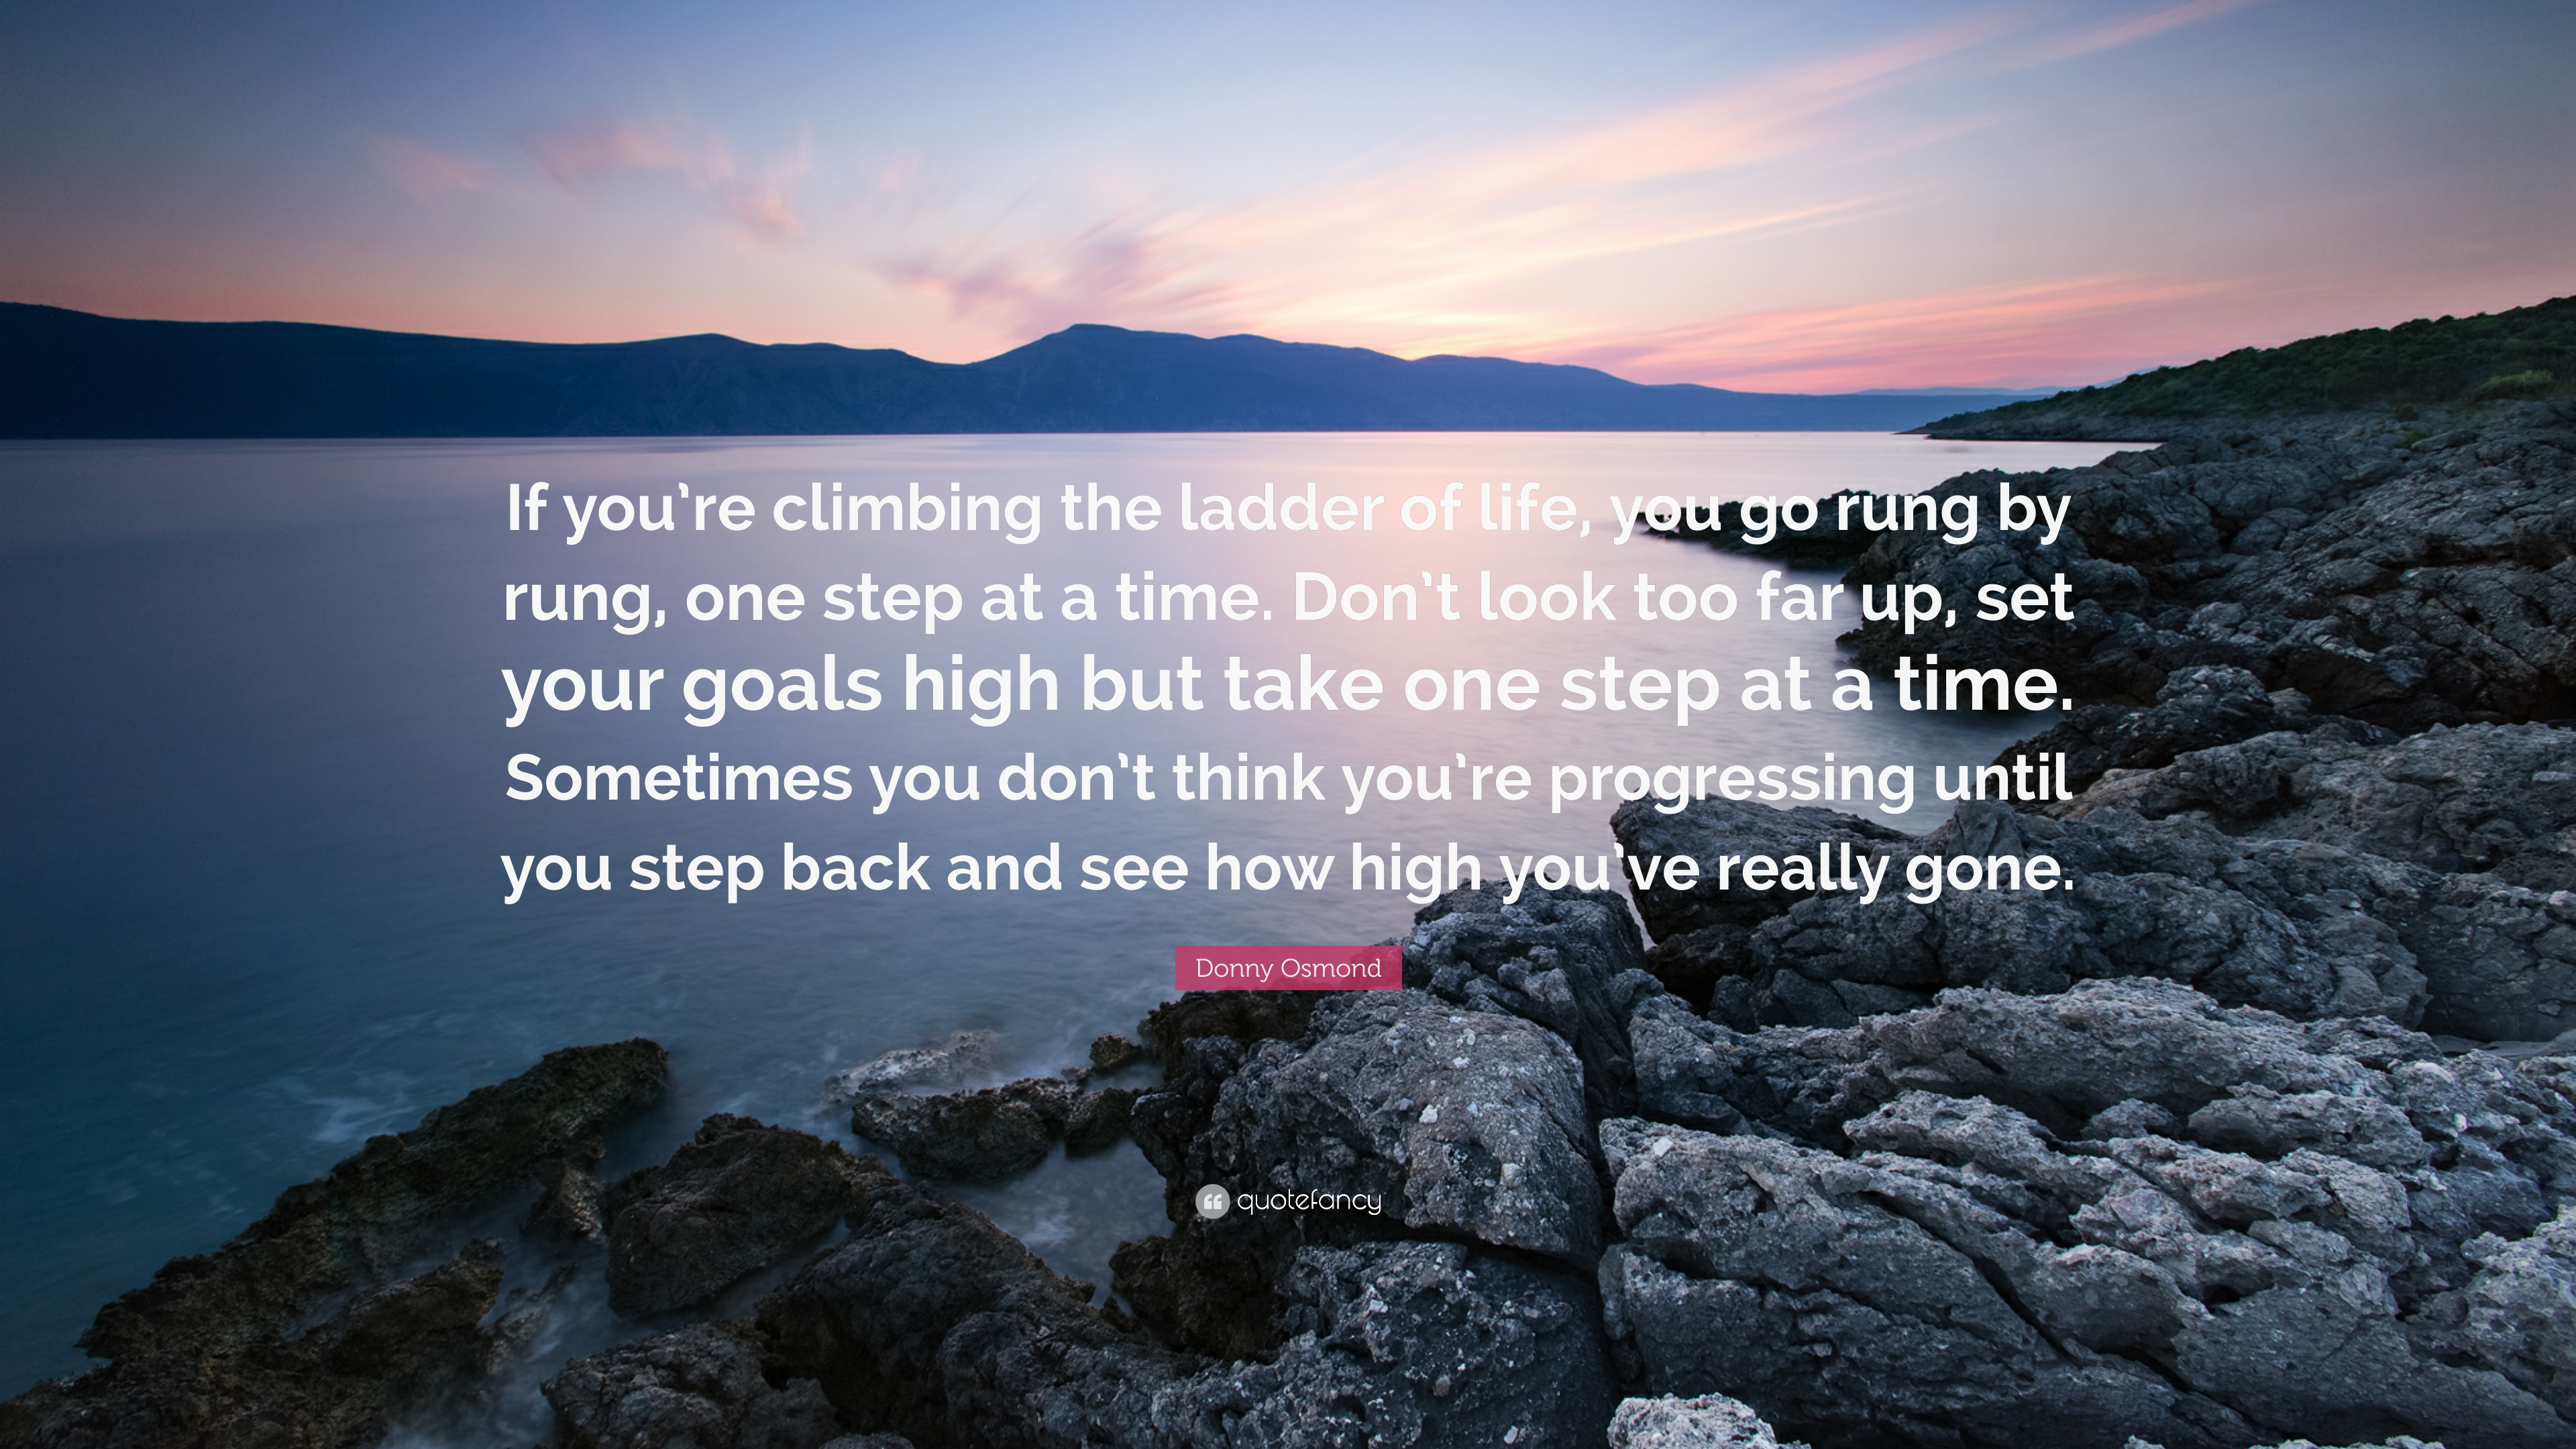 Donny Osmond Quote If Youre Climbing The Ladder Of Life You Go